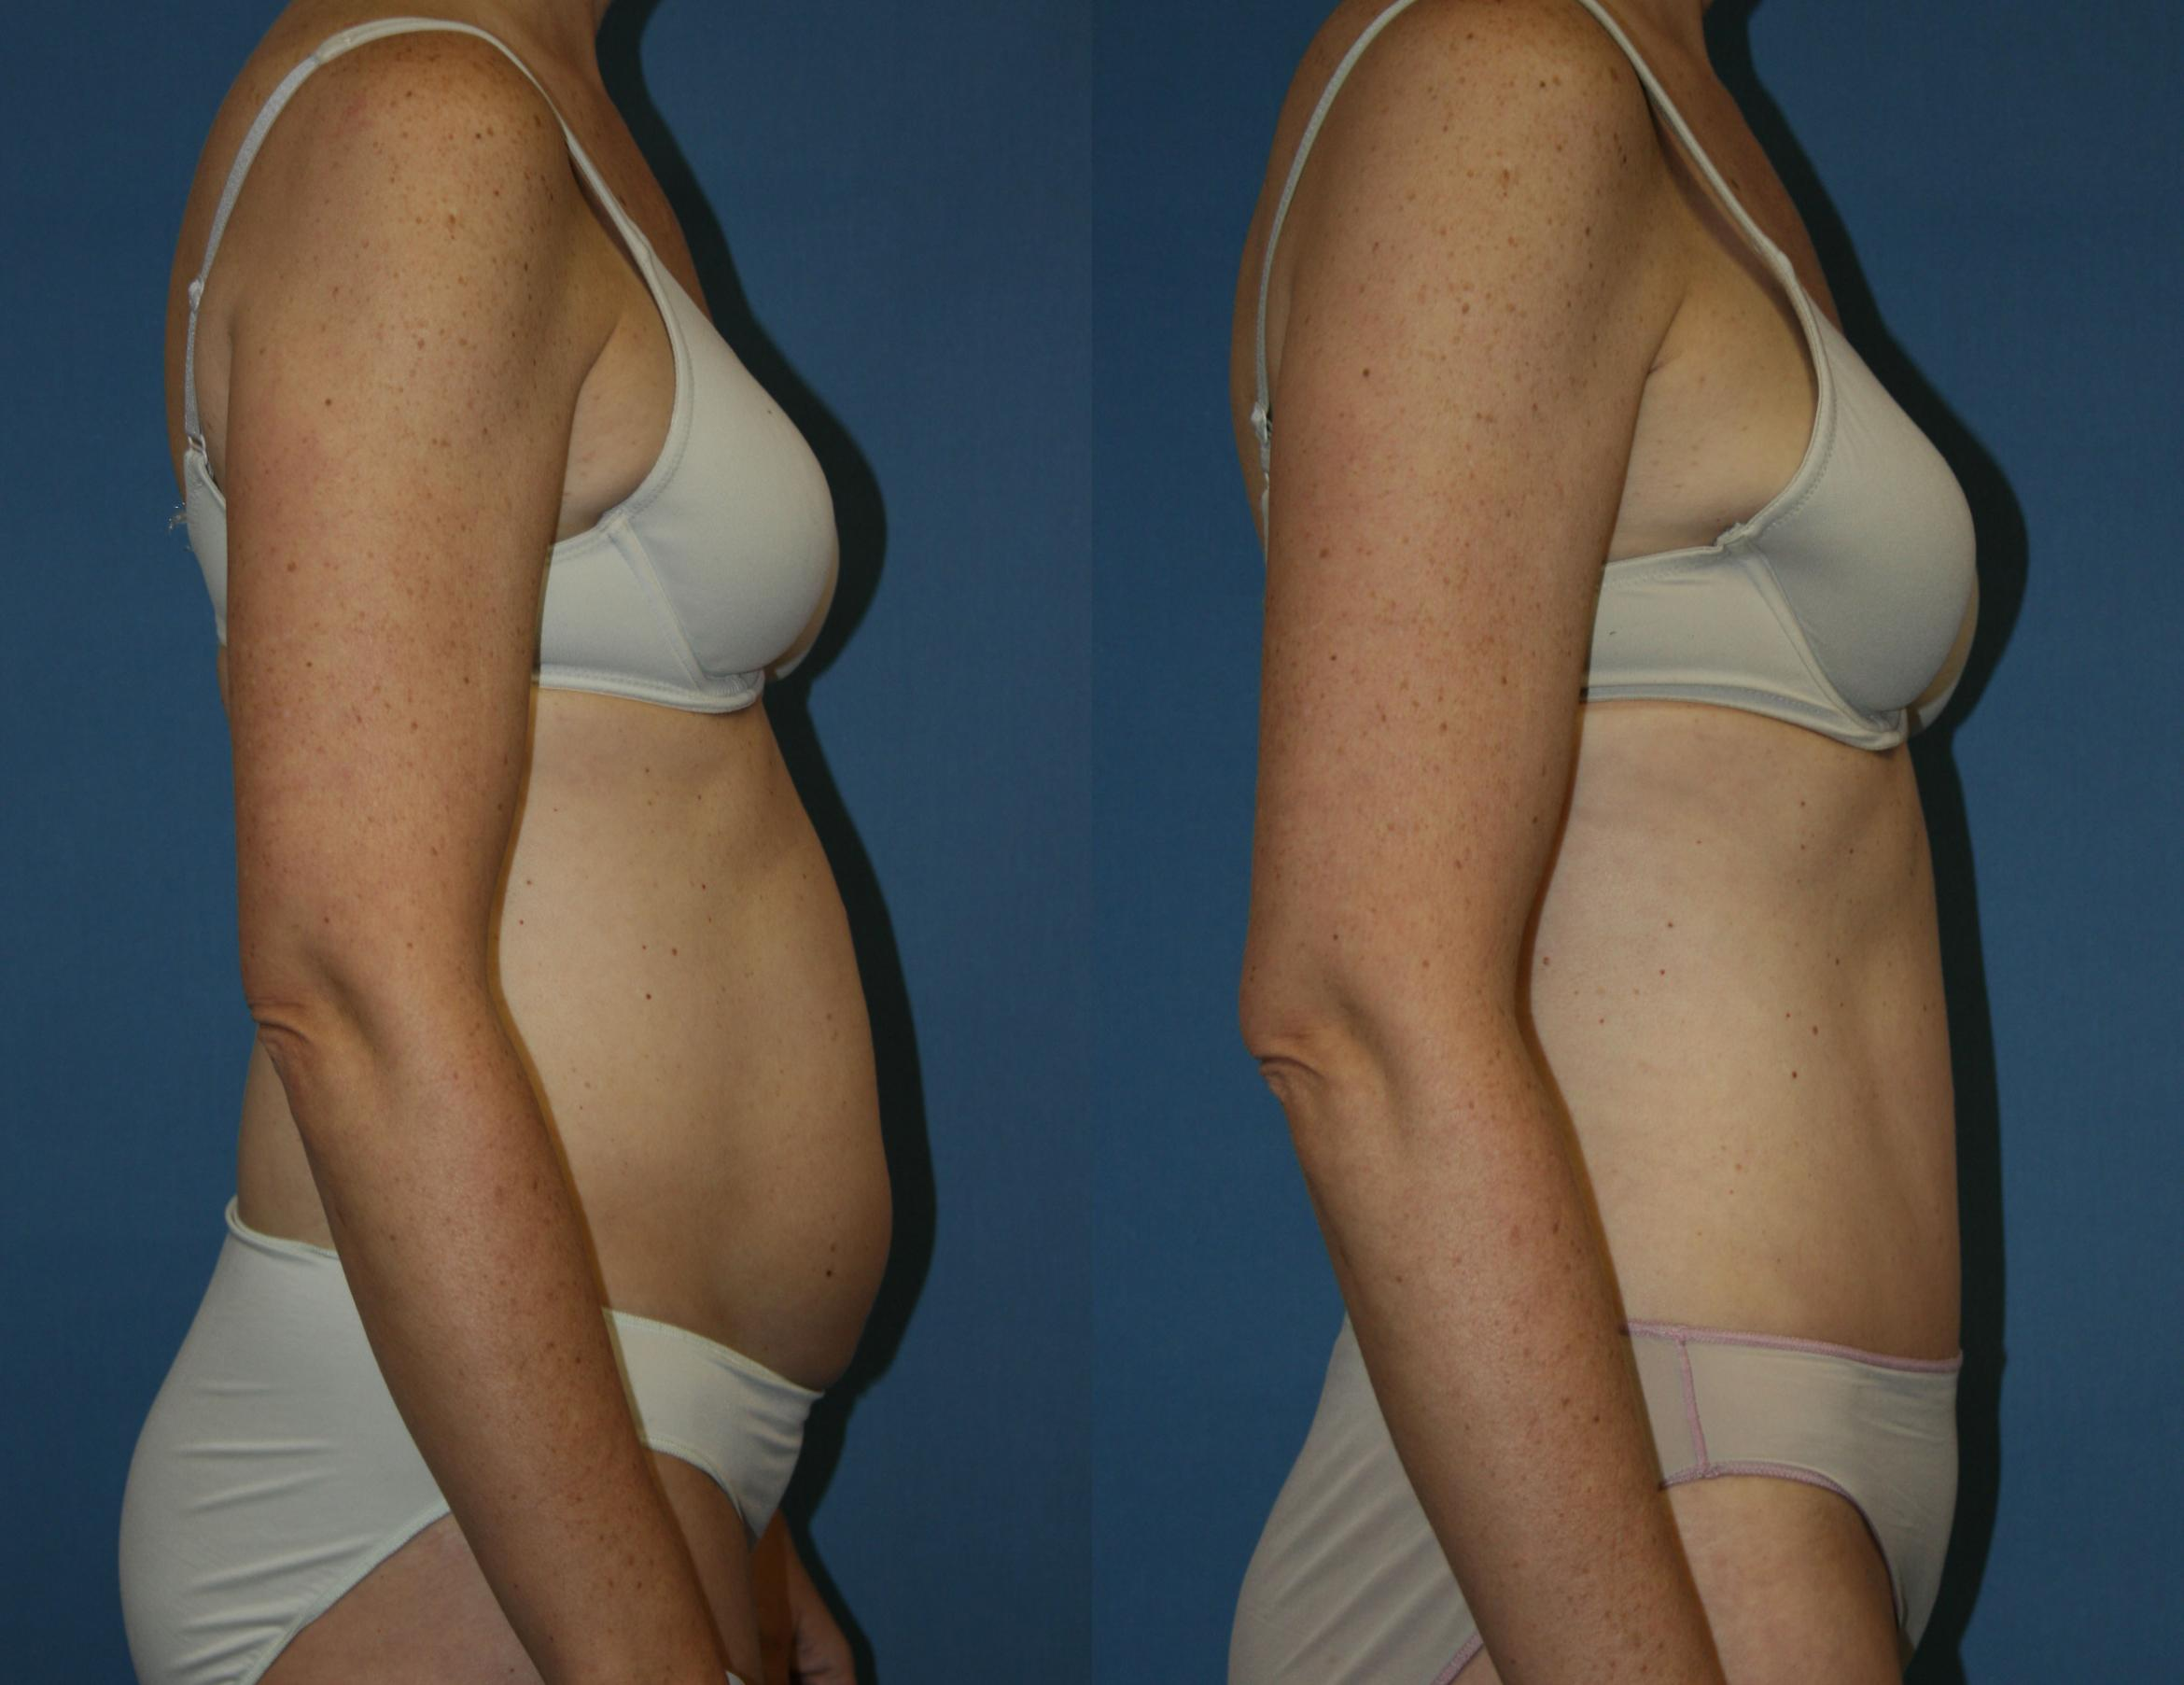 Tummy Tuck Case 39 Before & After View #5 | Downers Grove, IL | Dr. Sandeep Jejurikar